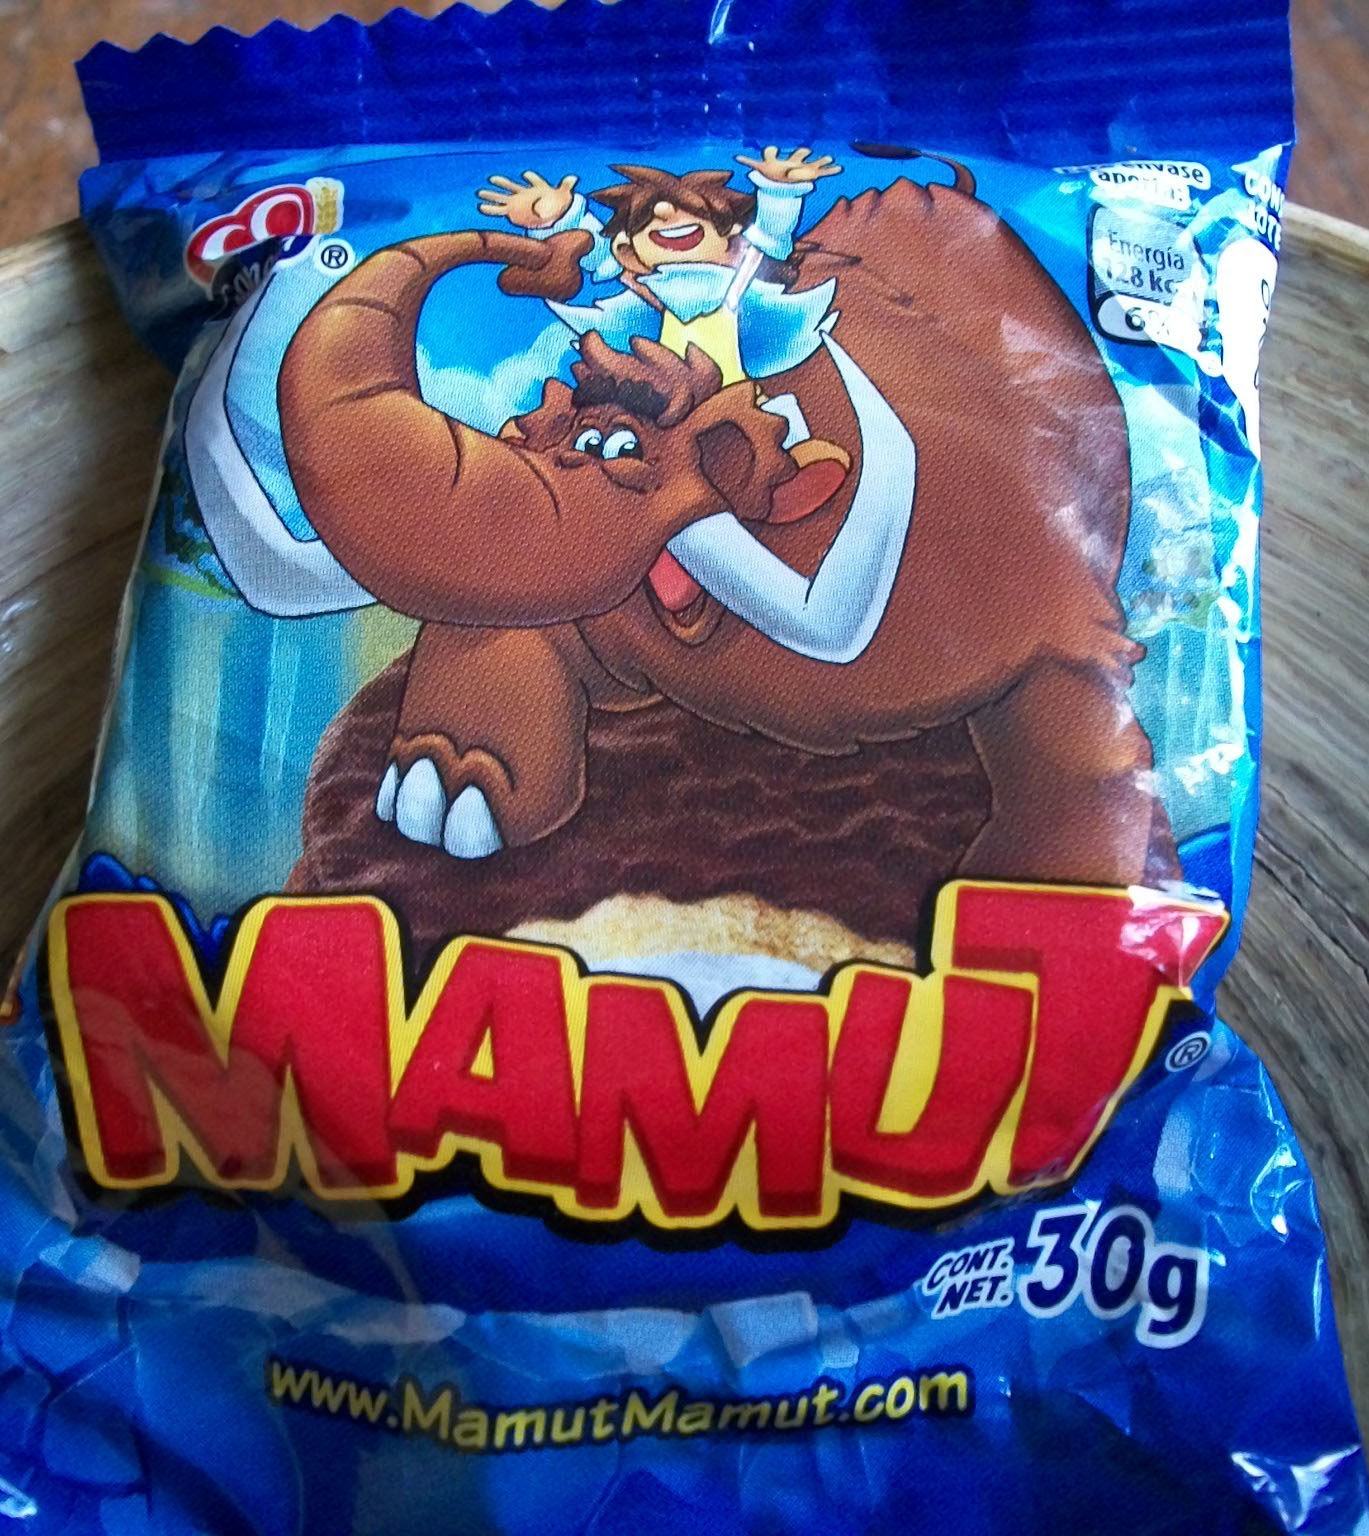 Gamesa Mamut Cookie 30g Product Of Mexico Roodonfood